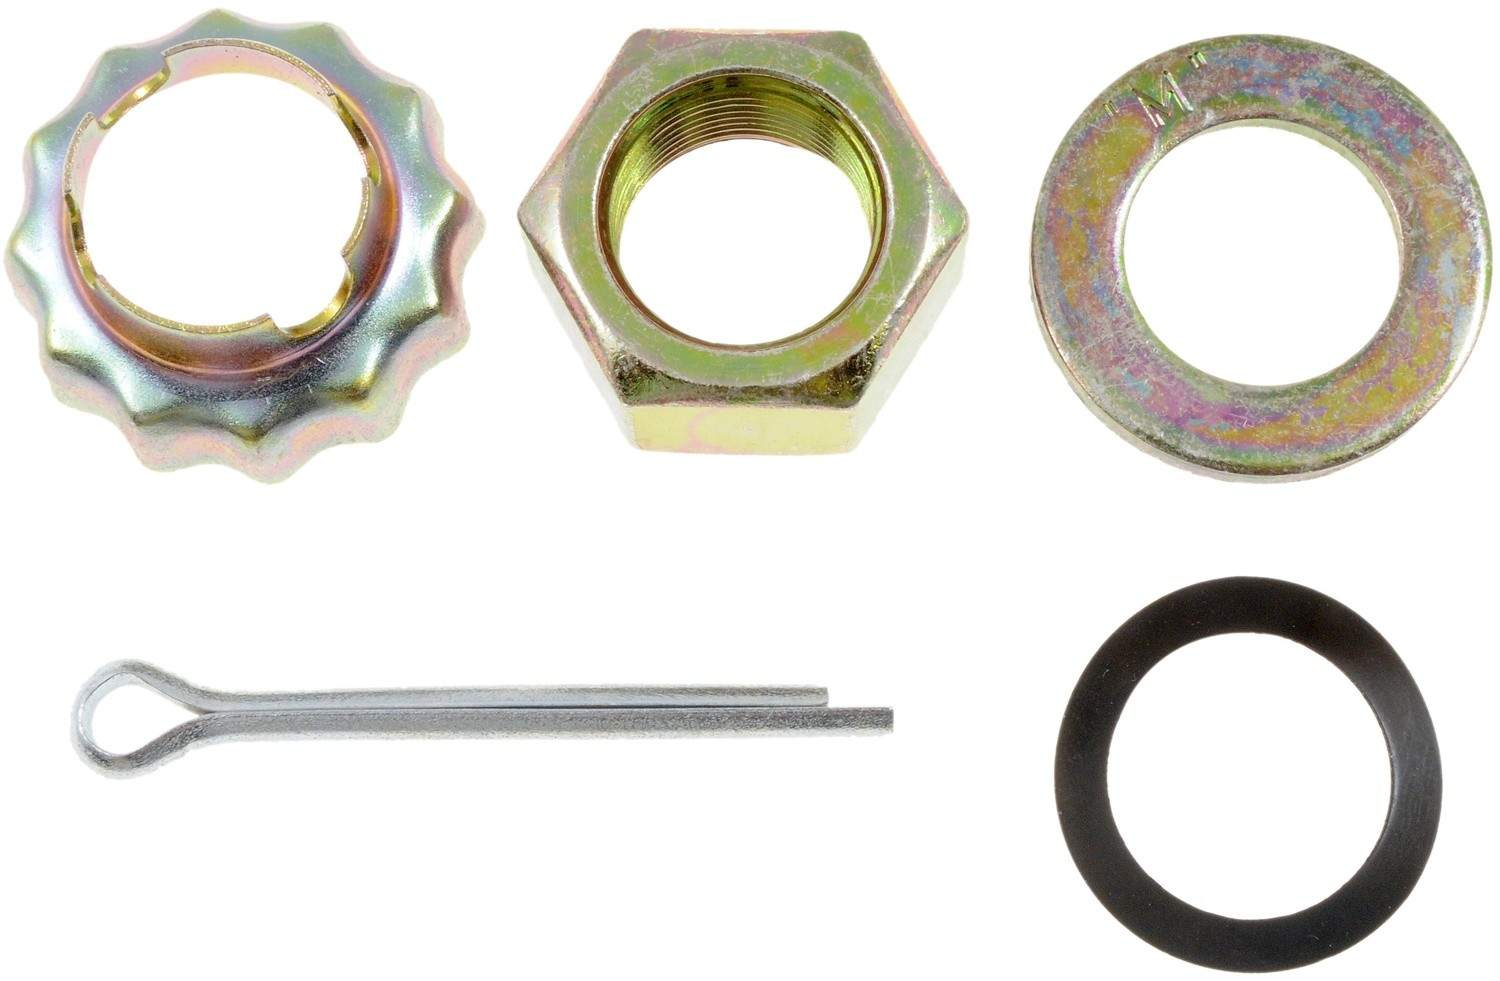 DORMAN - AUTOGRADE - Spindle Lock Nut Kit - DOC 05183